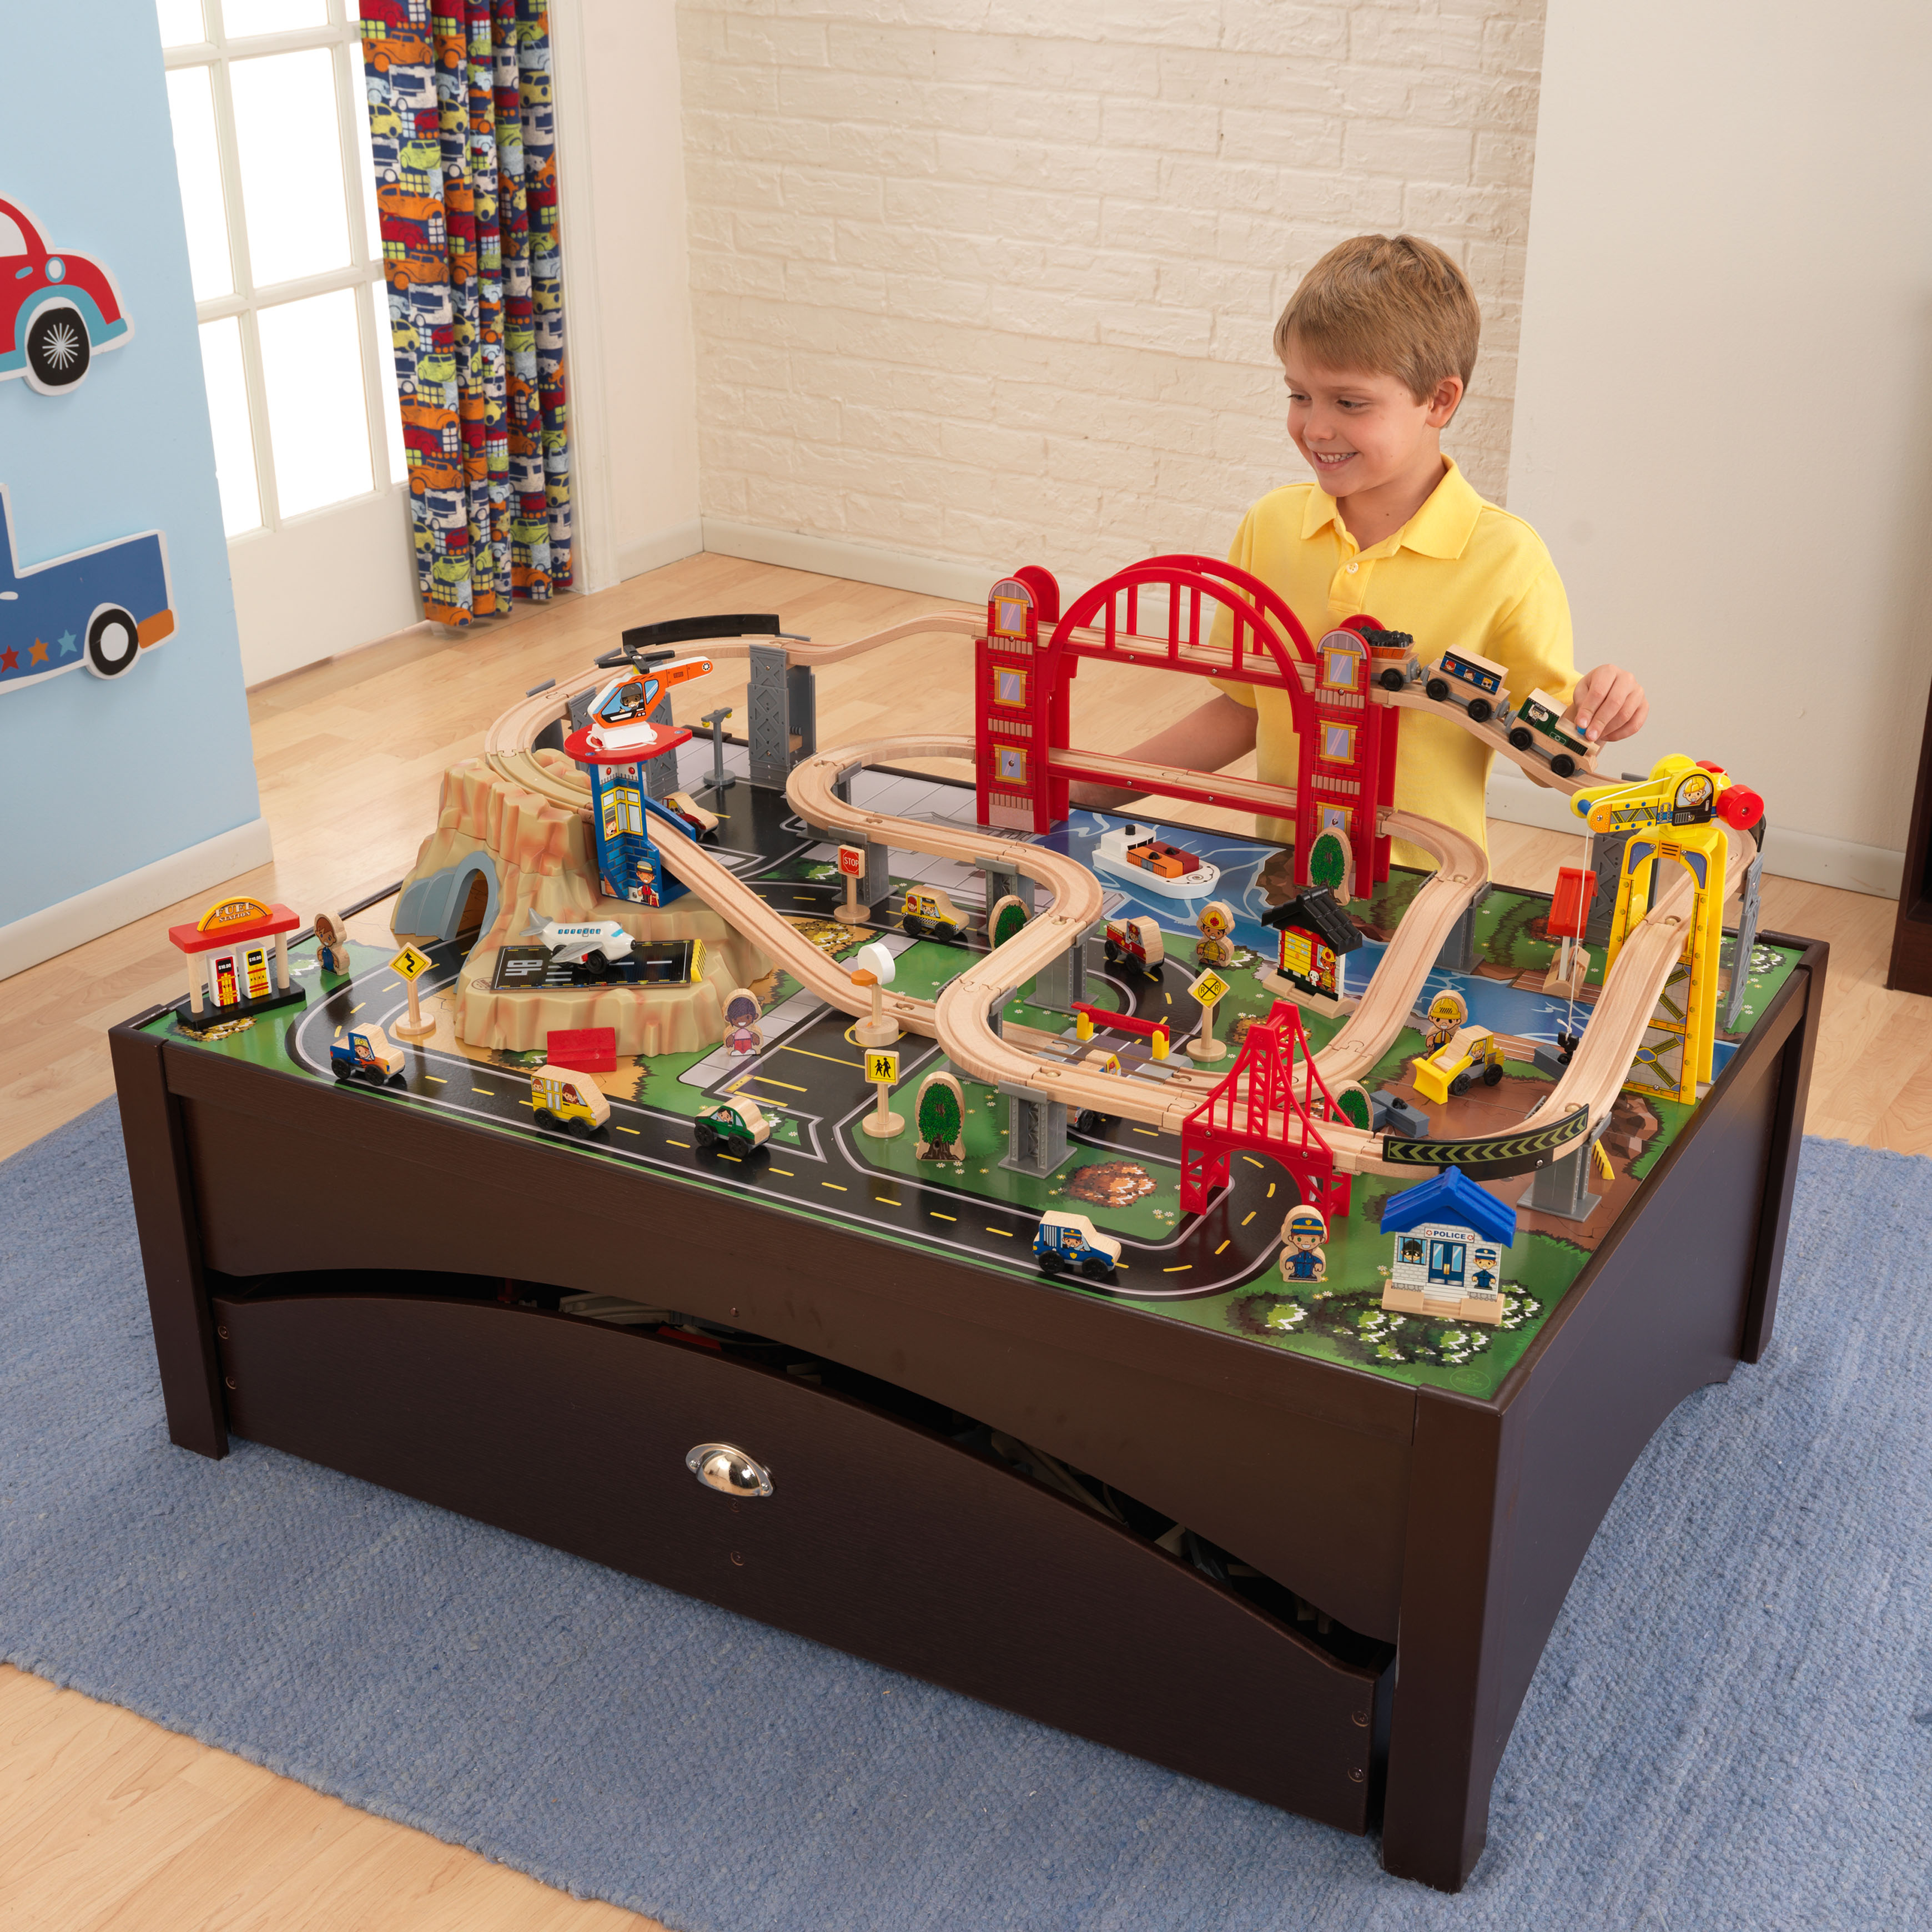 KidKraft Metropolis Train Set & Table with 100 accessories included by KidKraft